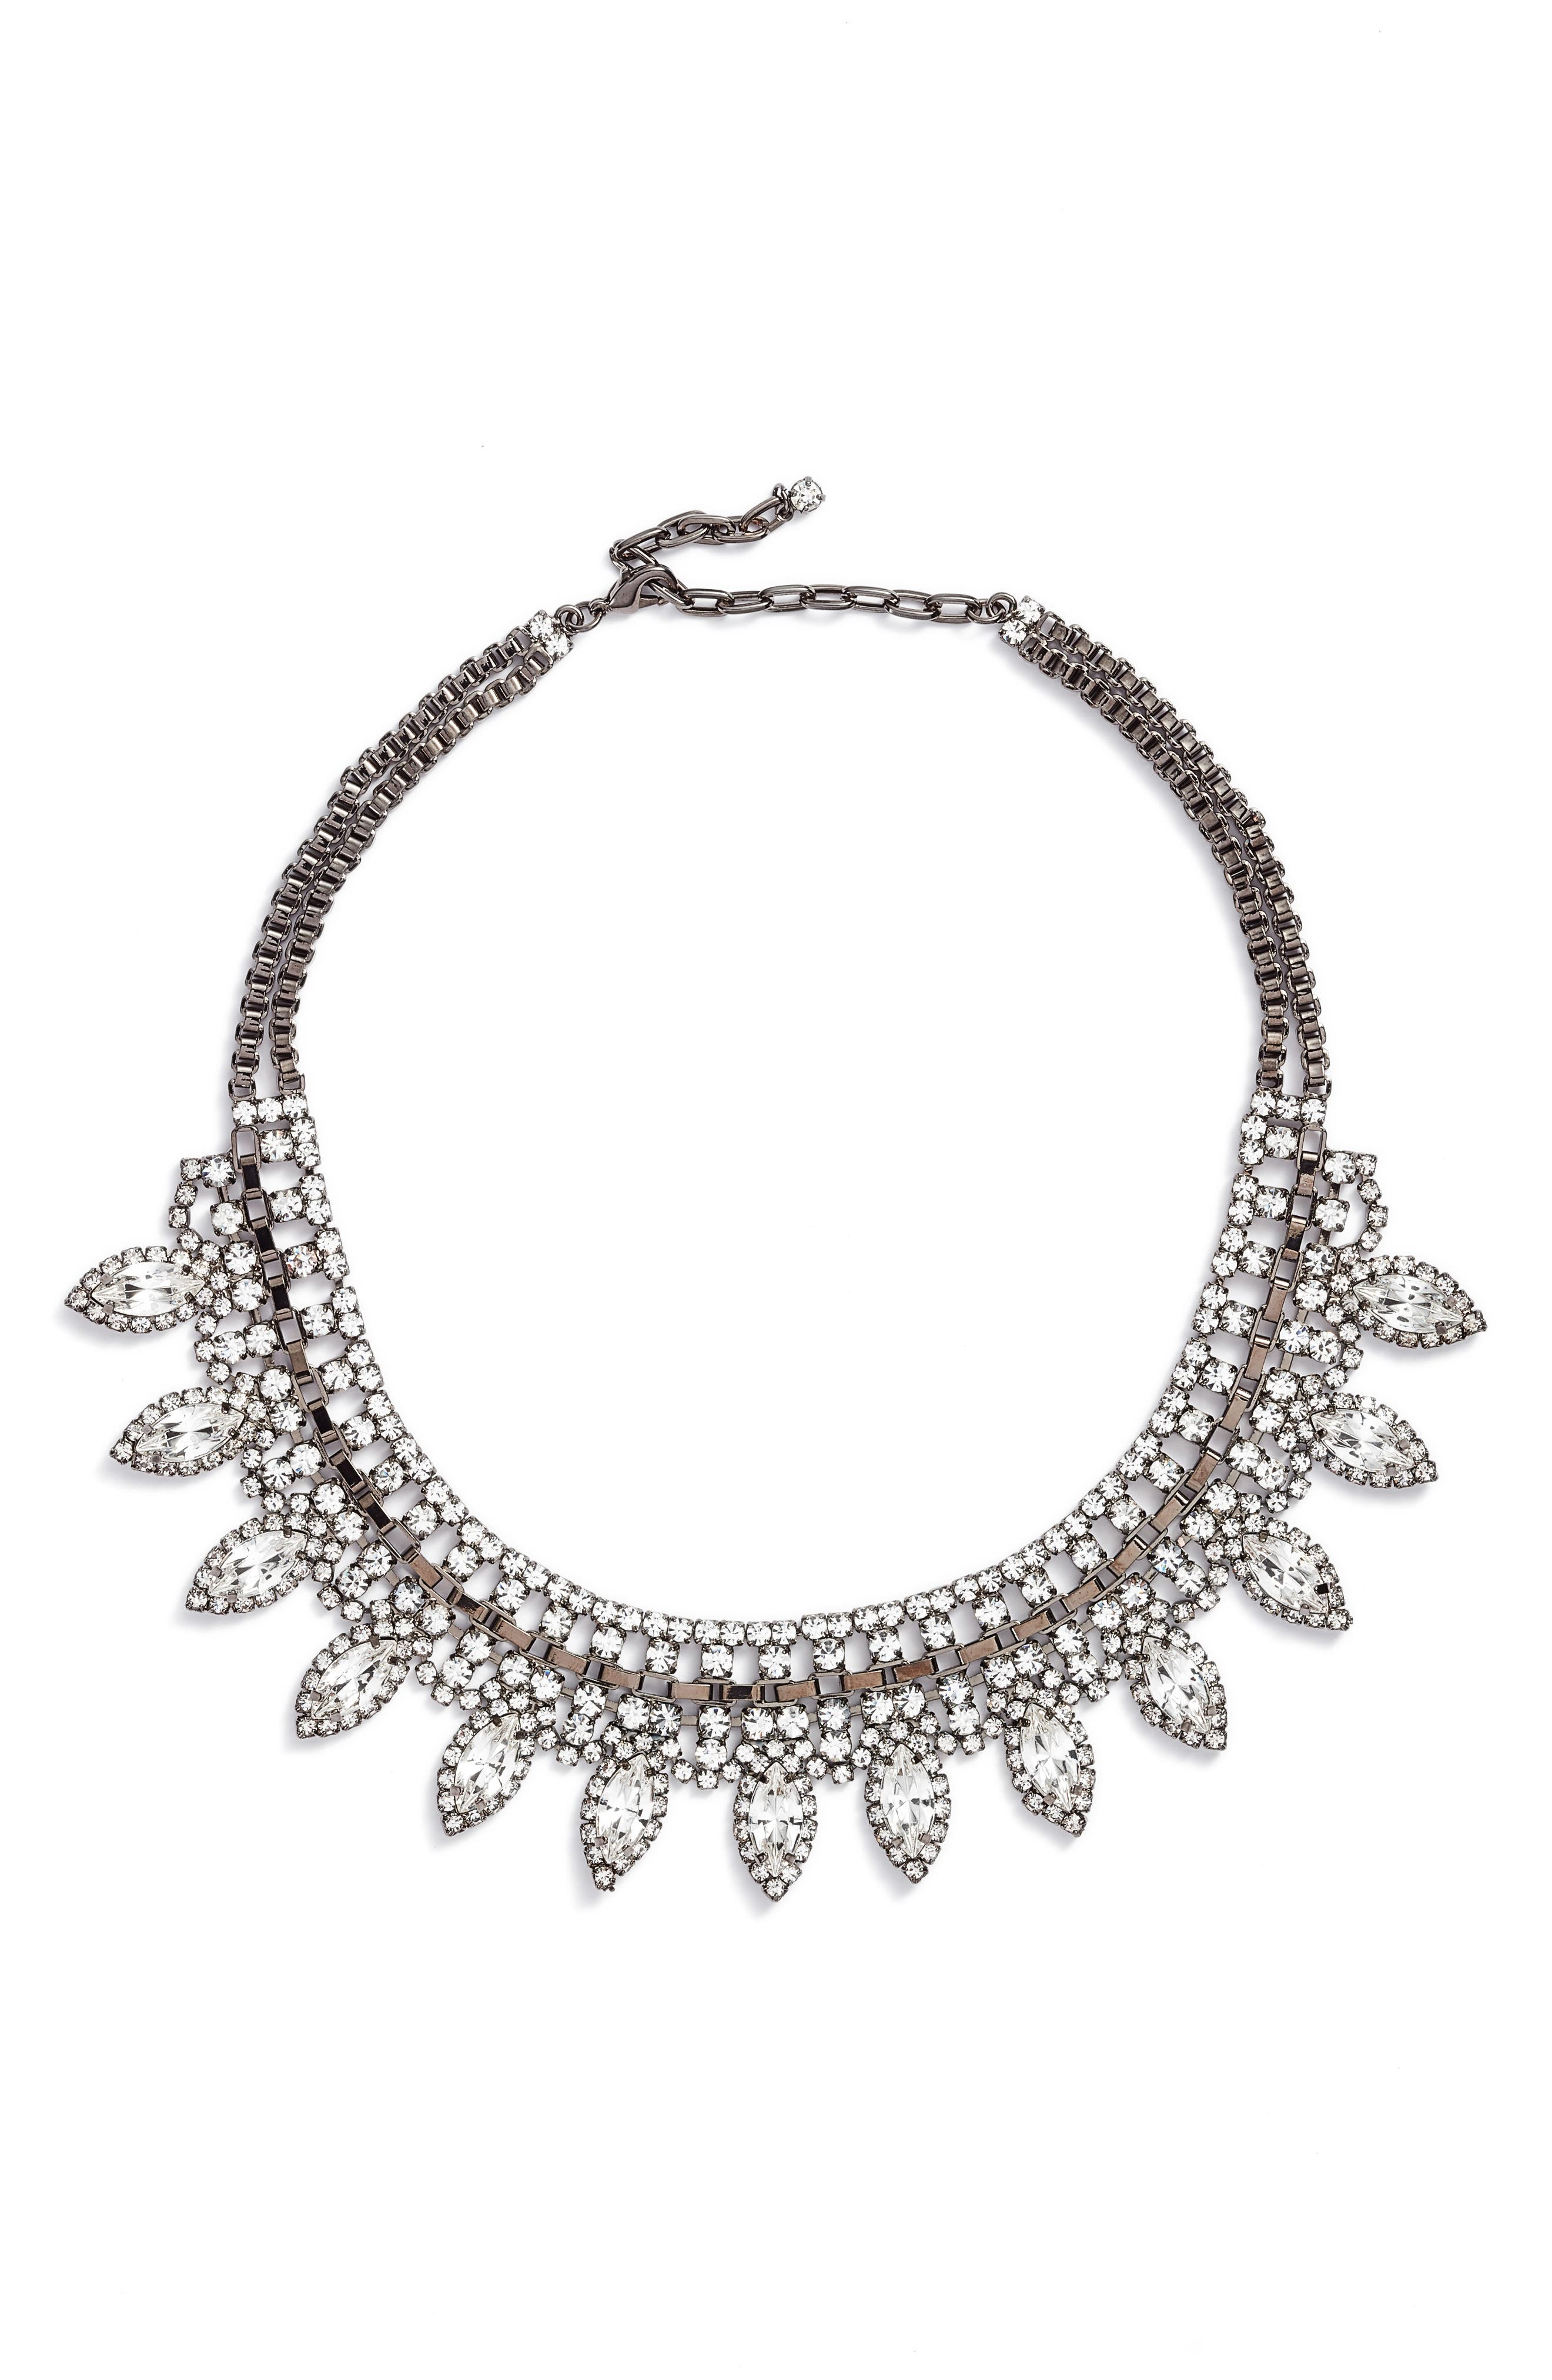 CRISTABELLE Large Navette Frontal Necklace